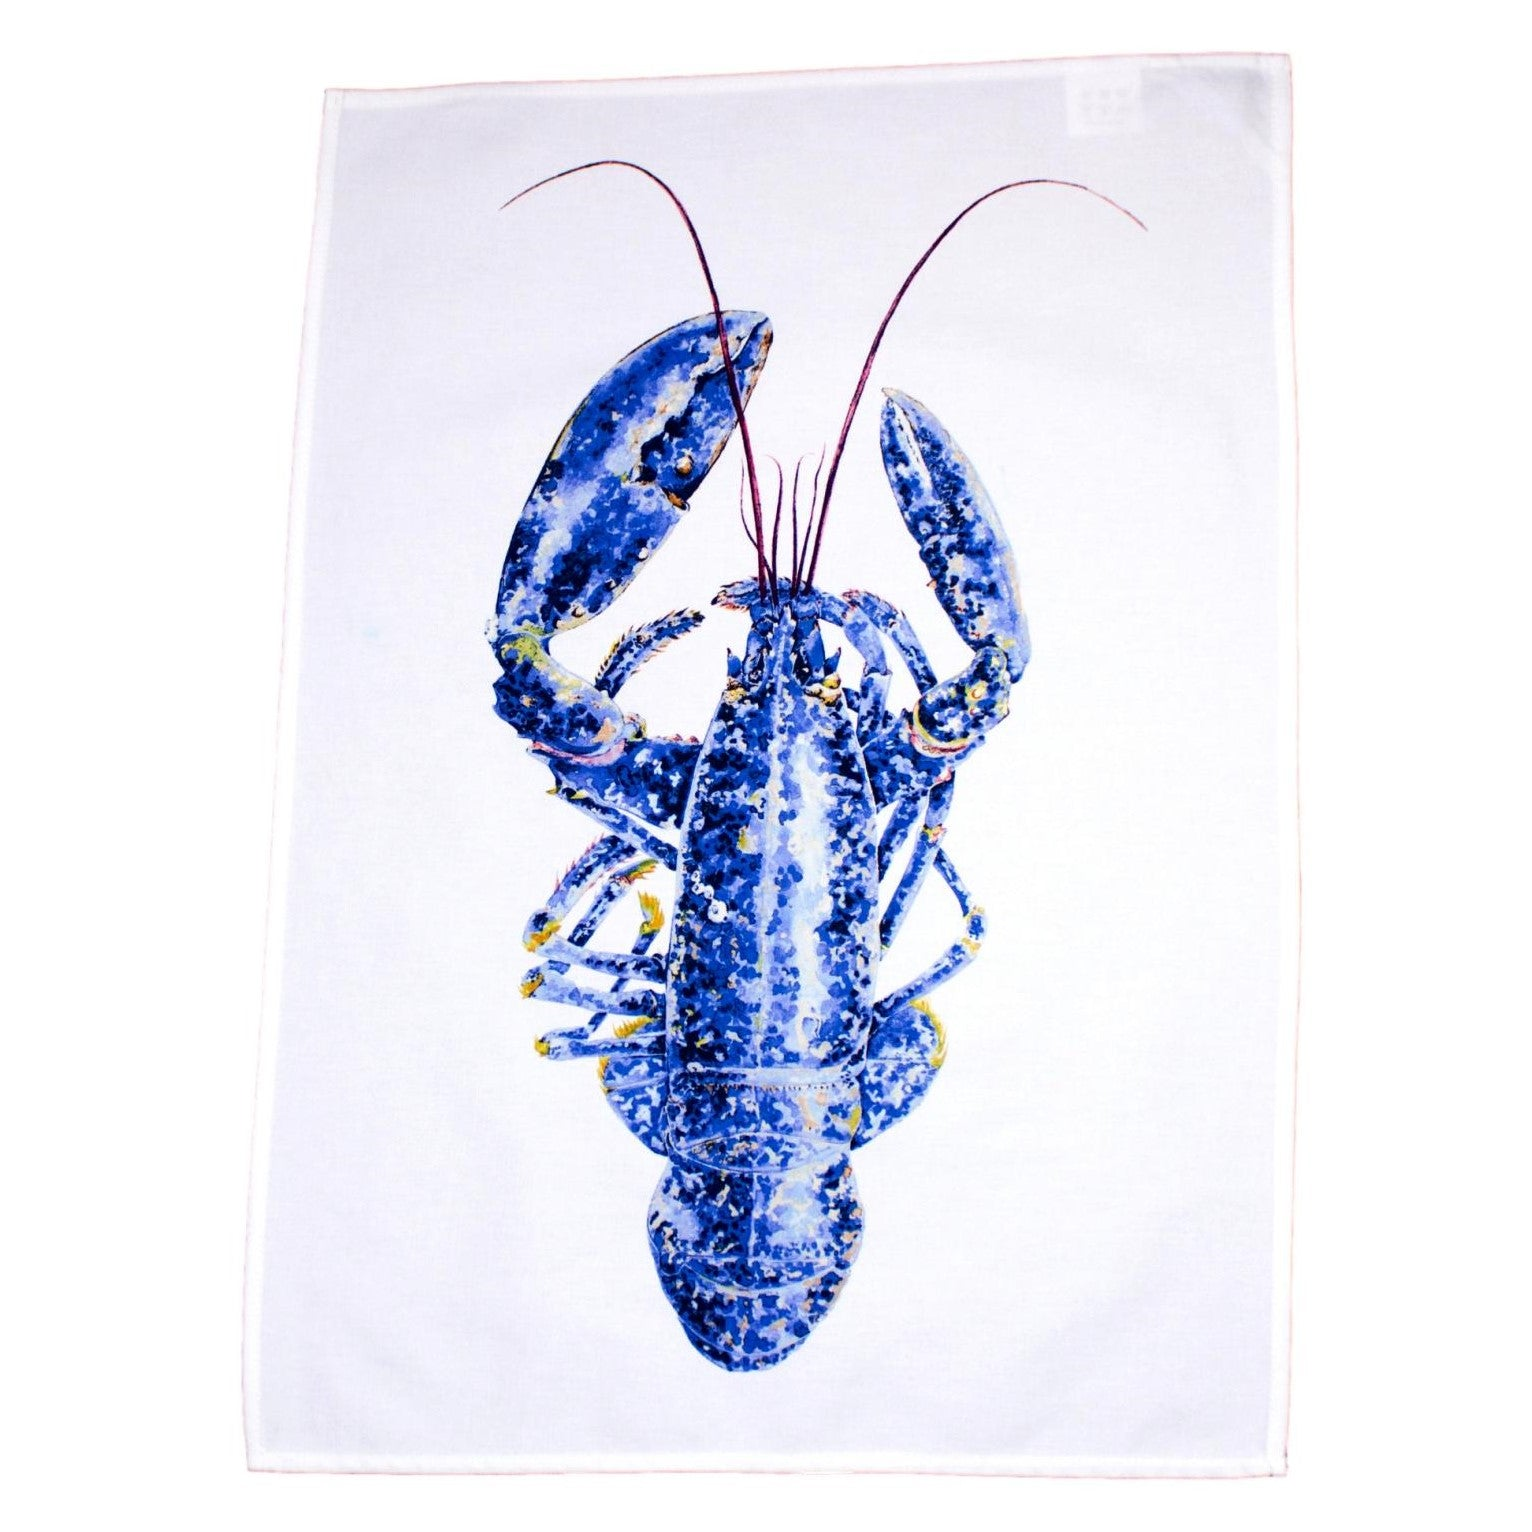 tea towel with blue lobster design